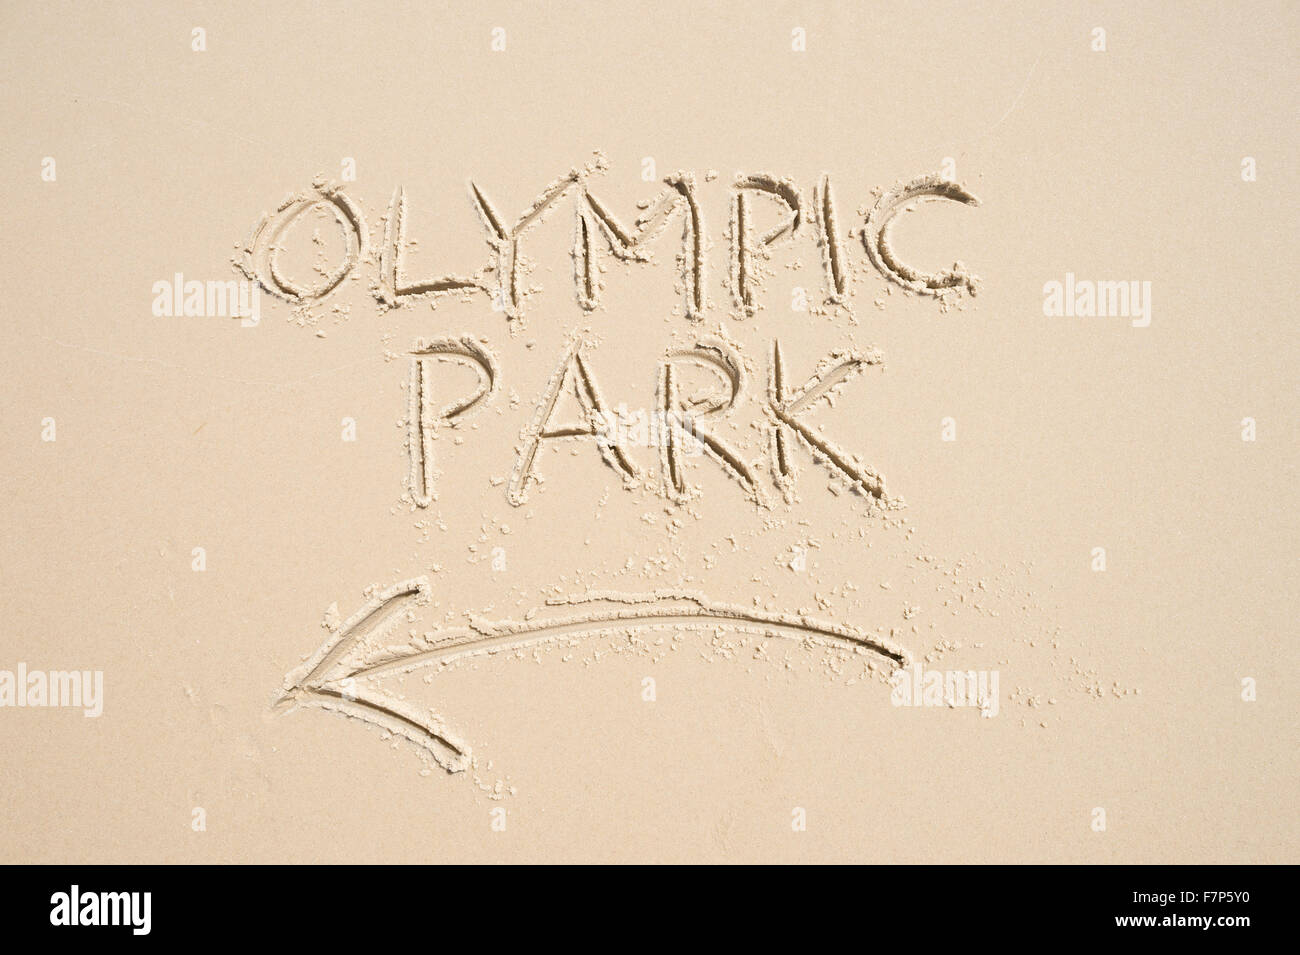 RIO DE JANEIRO, BRAZIL - NOVEMBER 10, 2015: Handwritten message with arrow pointing the way to Olympic Park written - Stock Image